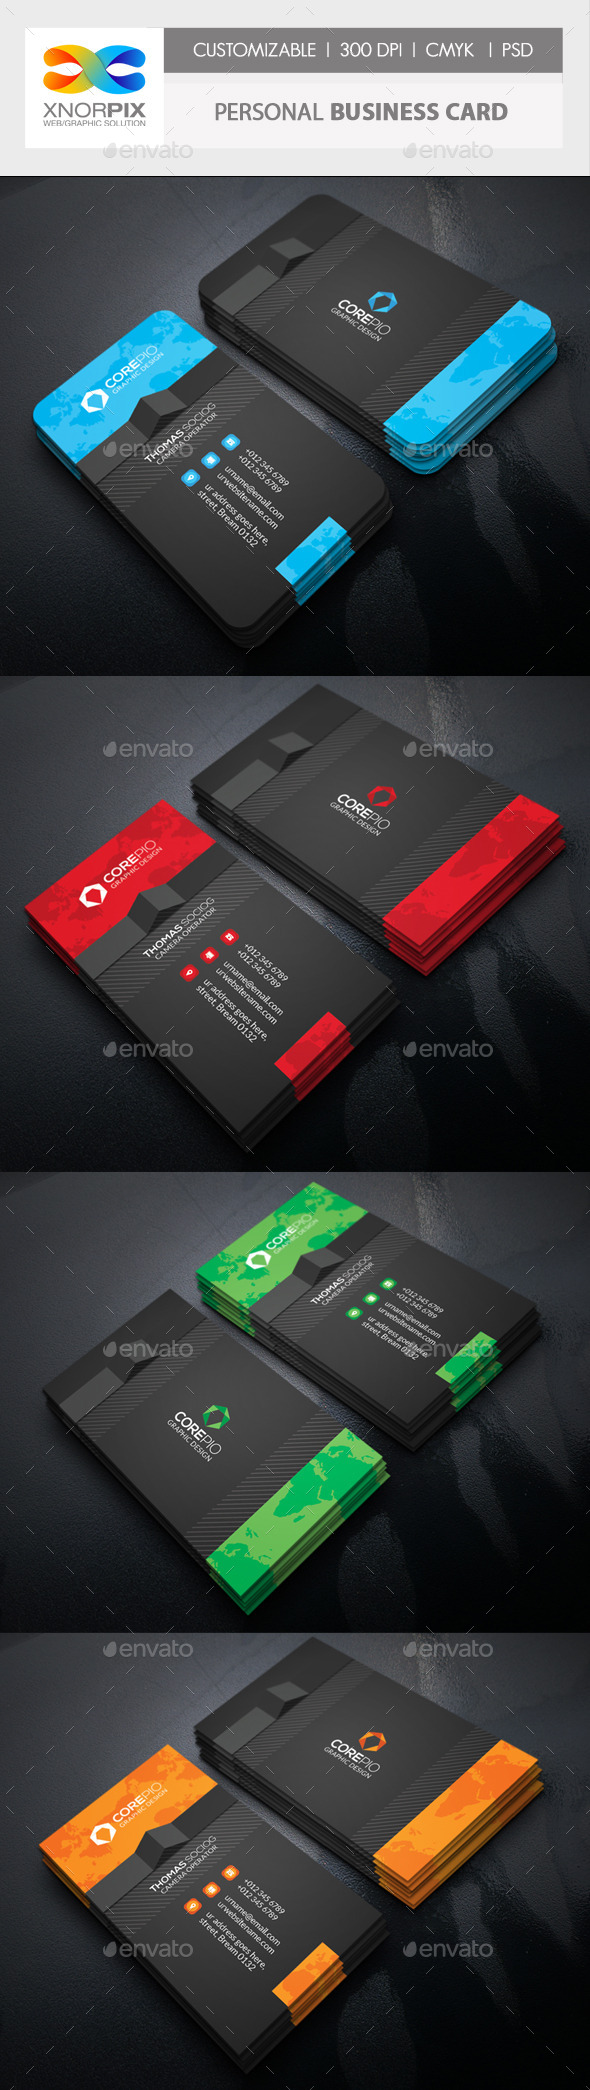 GraphicRiver Personal Business Card 10795562